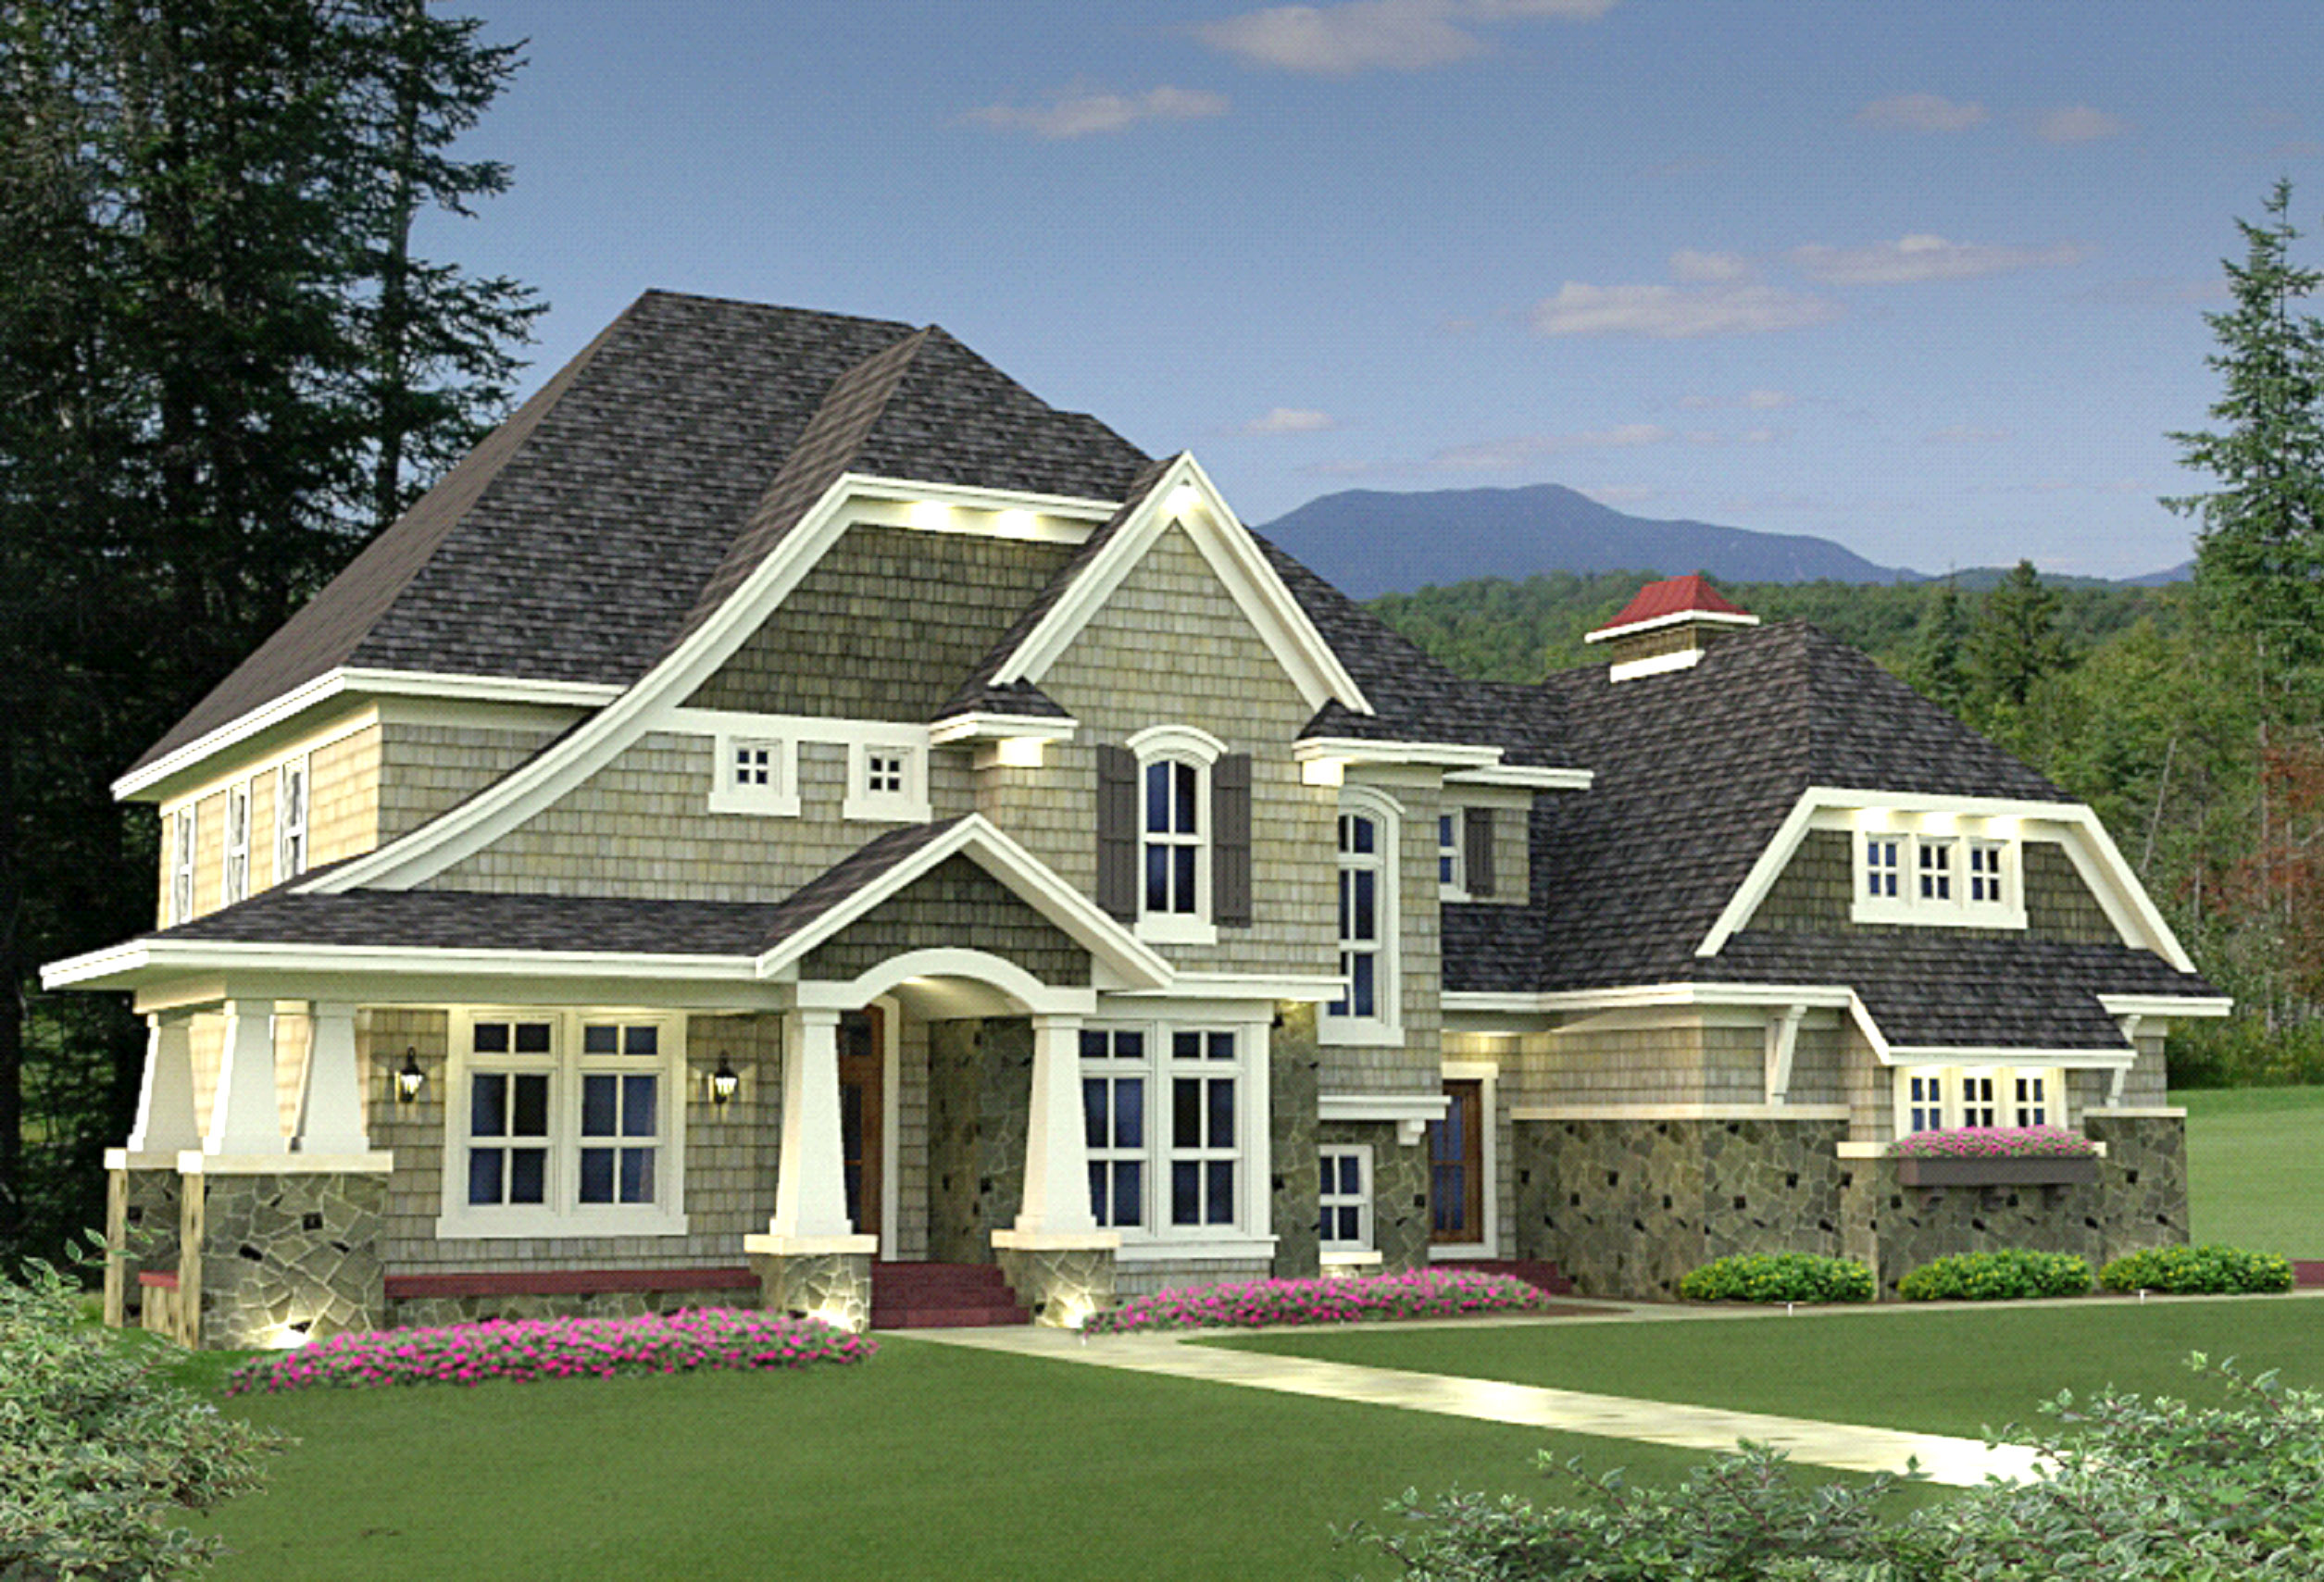 Bedroom Shingle Style Stunner Rk Architectural Designs House Plans